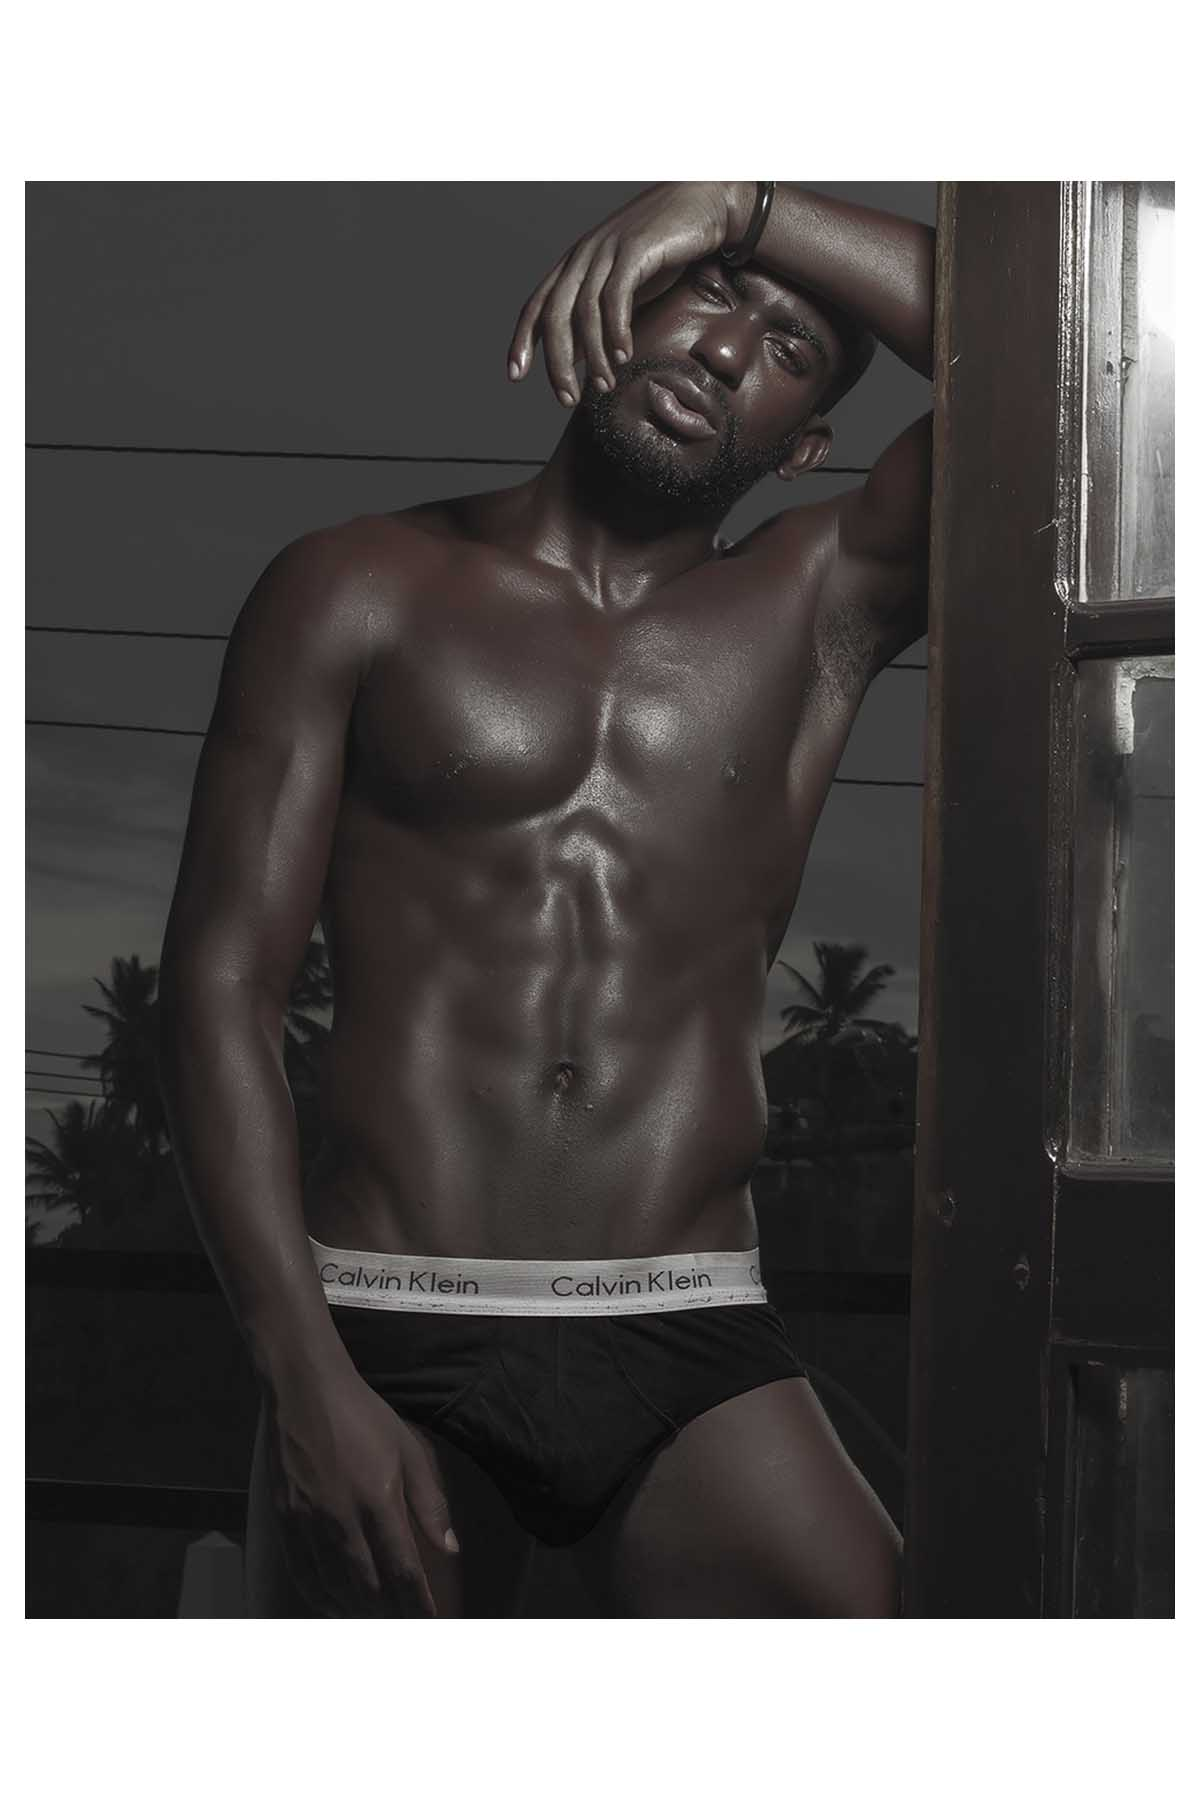 Apolo Luz by Vinícius Moreira for Brazilian Male Model